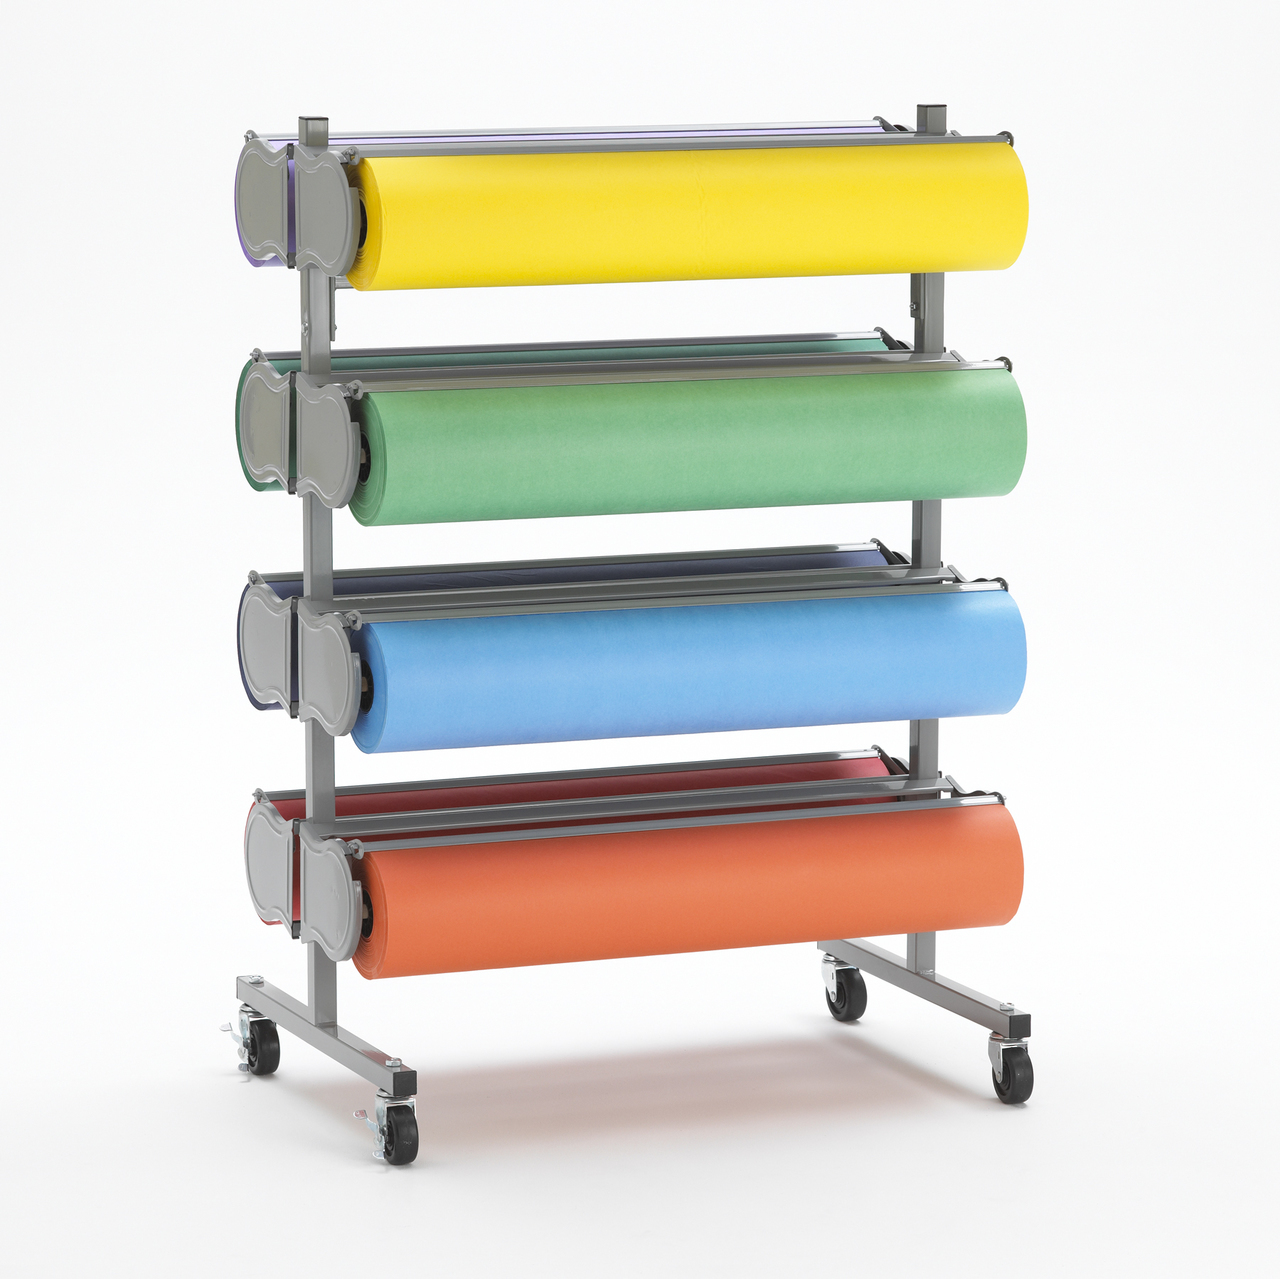 Bulletin Board Paper Dispenser, Holder, Storage